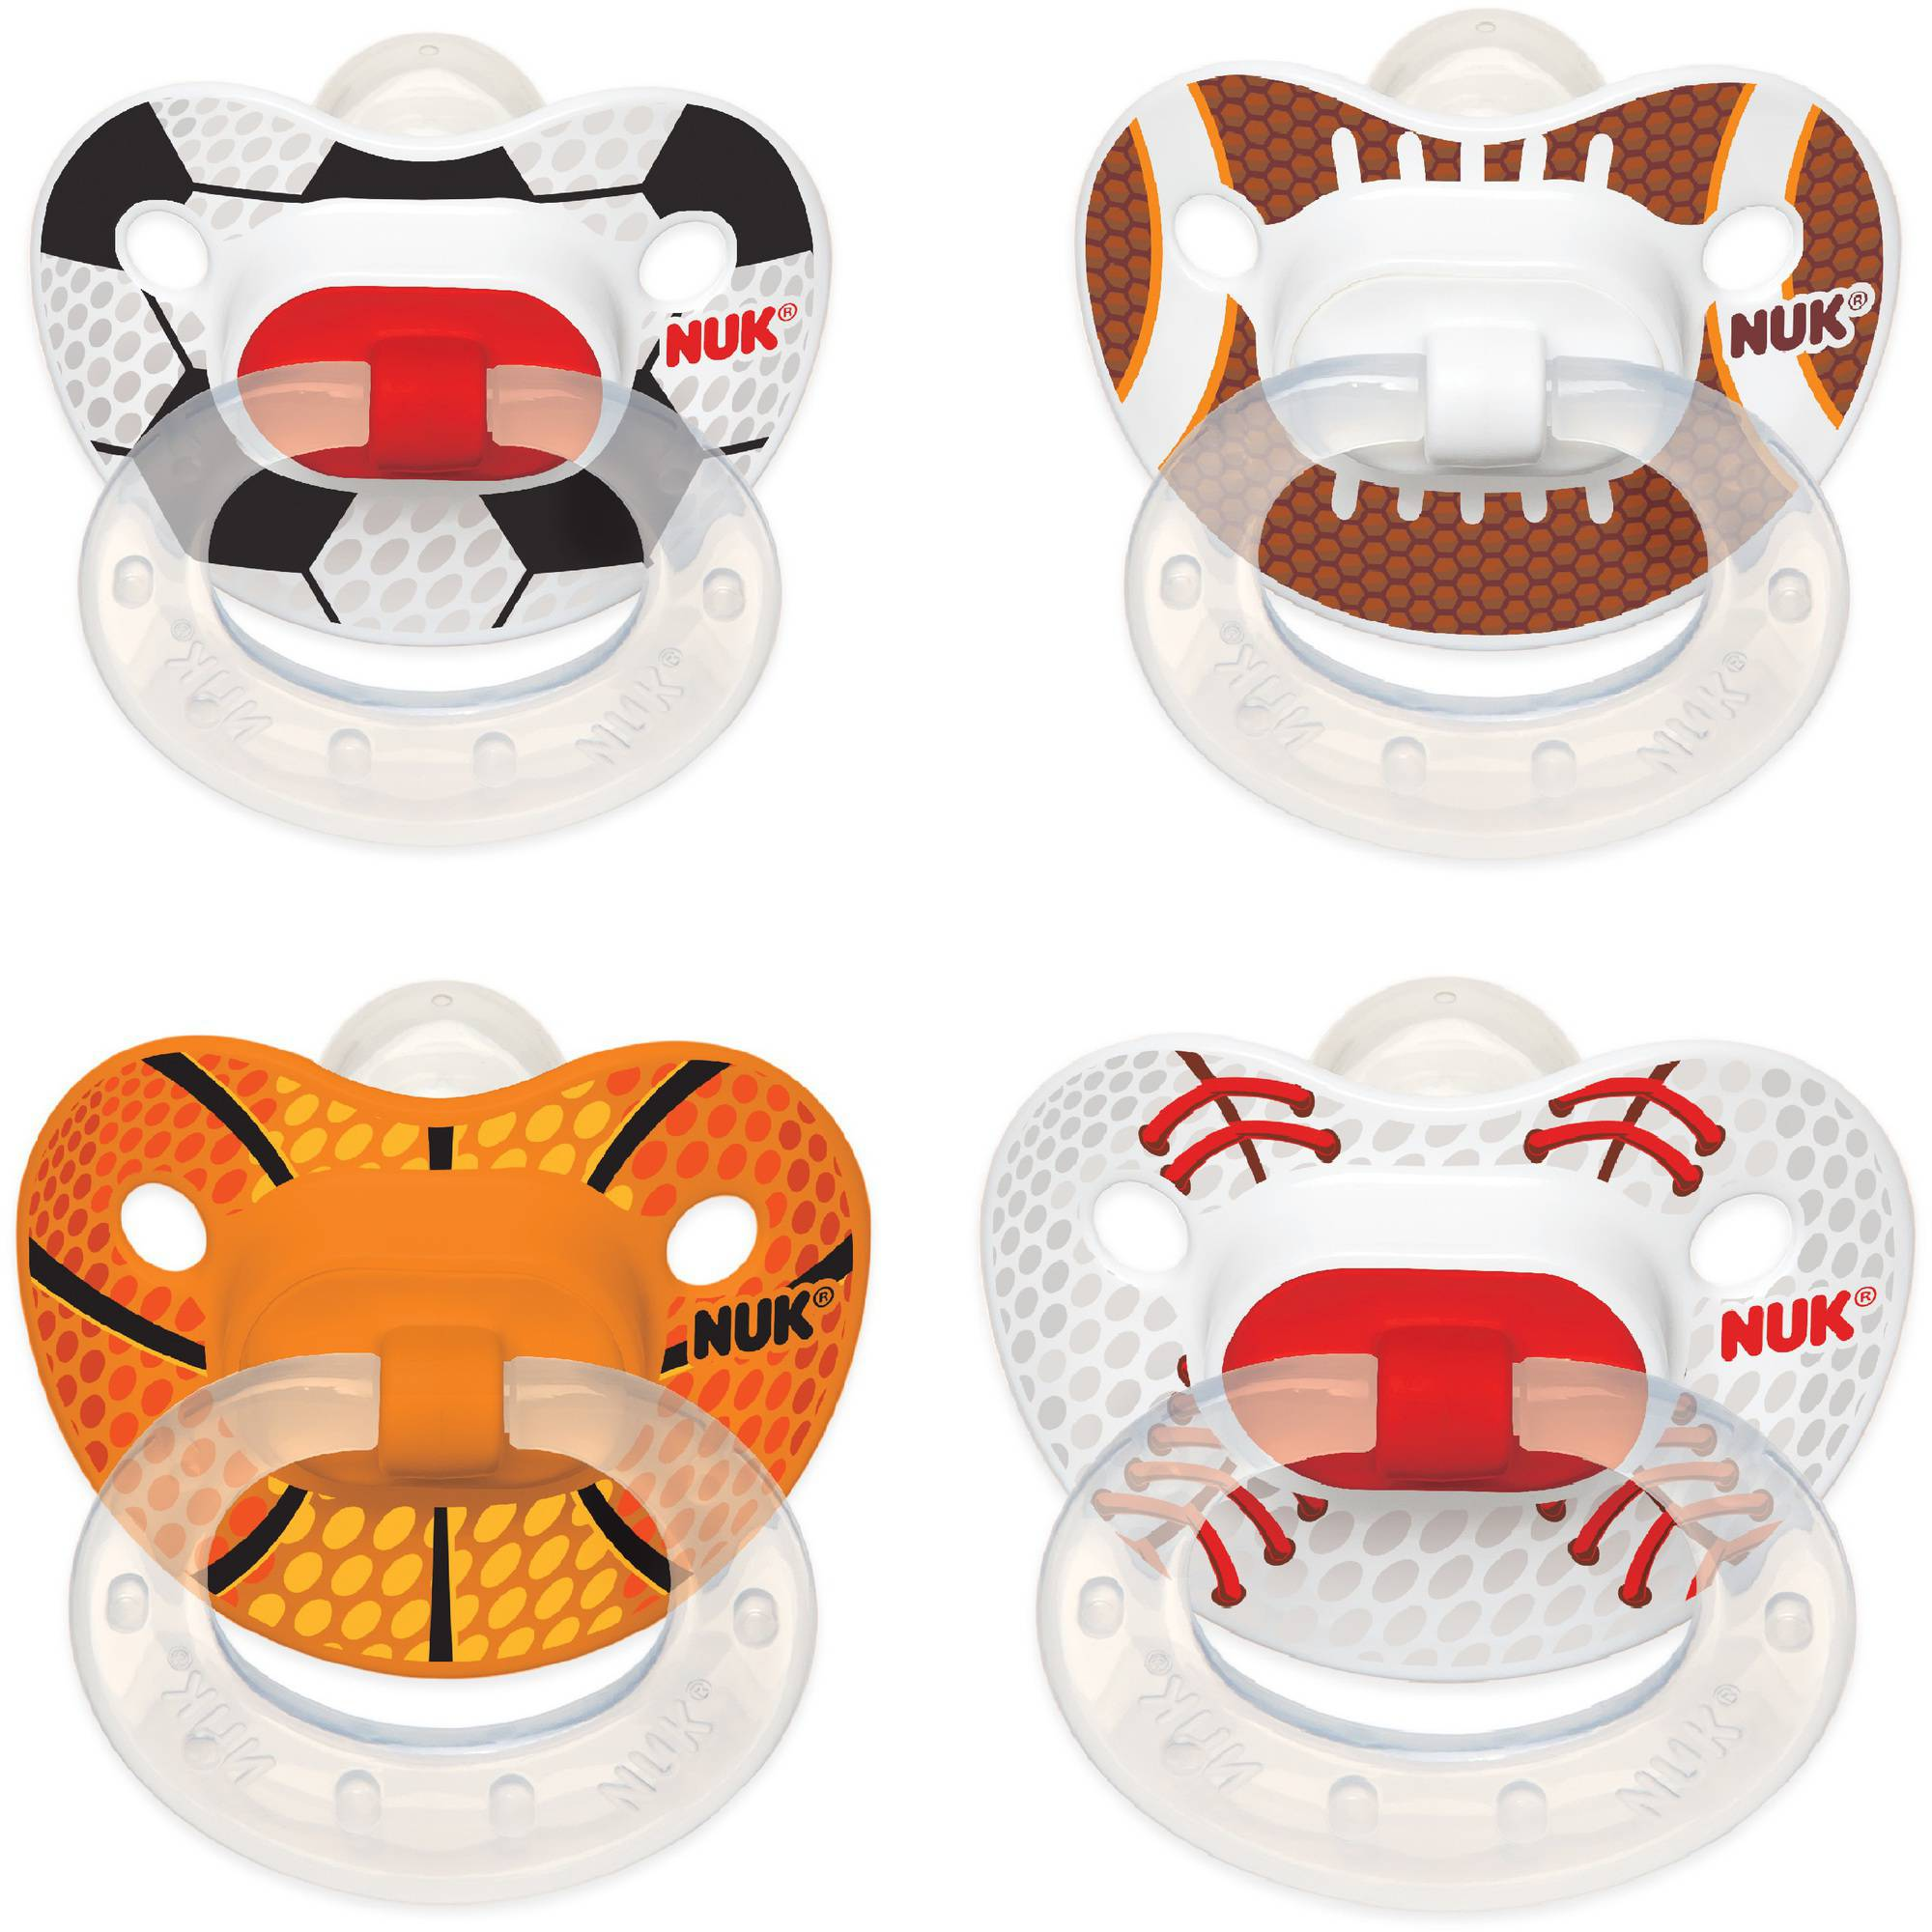 NUK Sports Silicone Orthodontic Pacifiers, 2ct, 6-18 months, BPA-Free (Design May Vary)